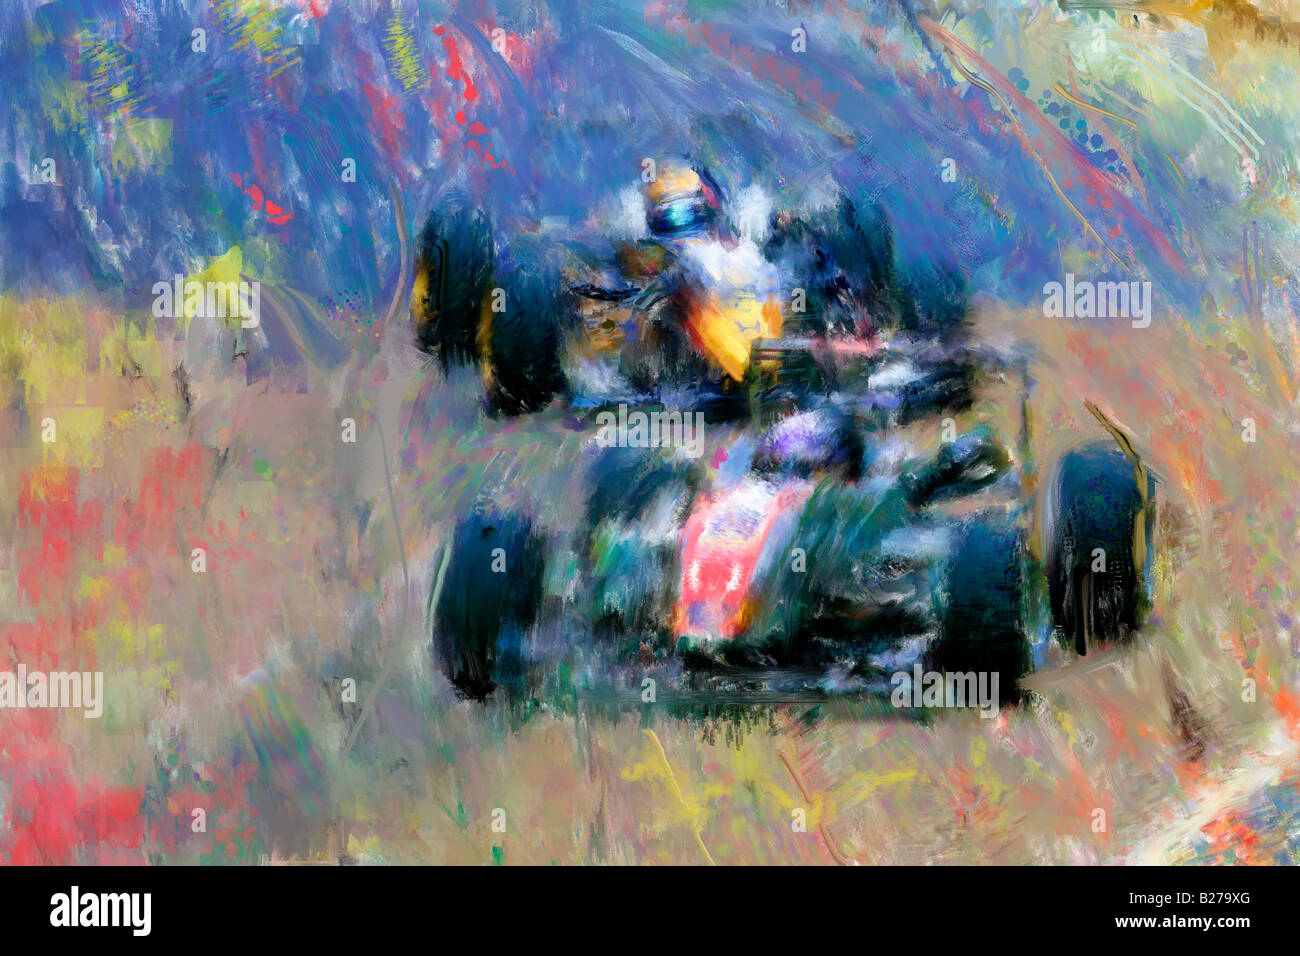 Abstract style painting of Race Cars at Macau Grand Prix - Stock Image